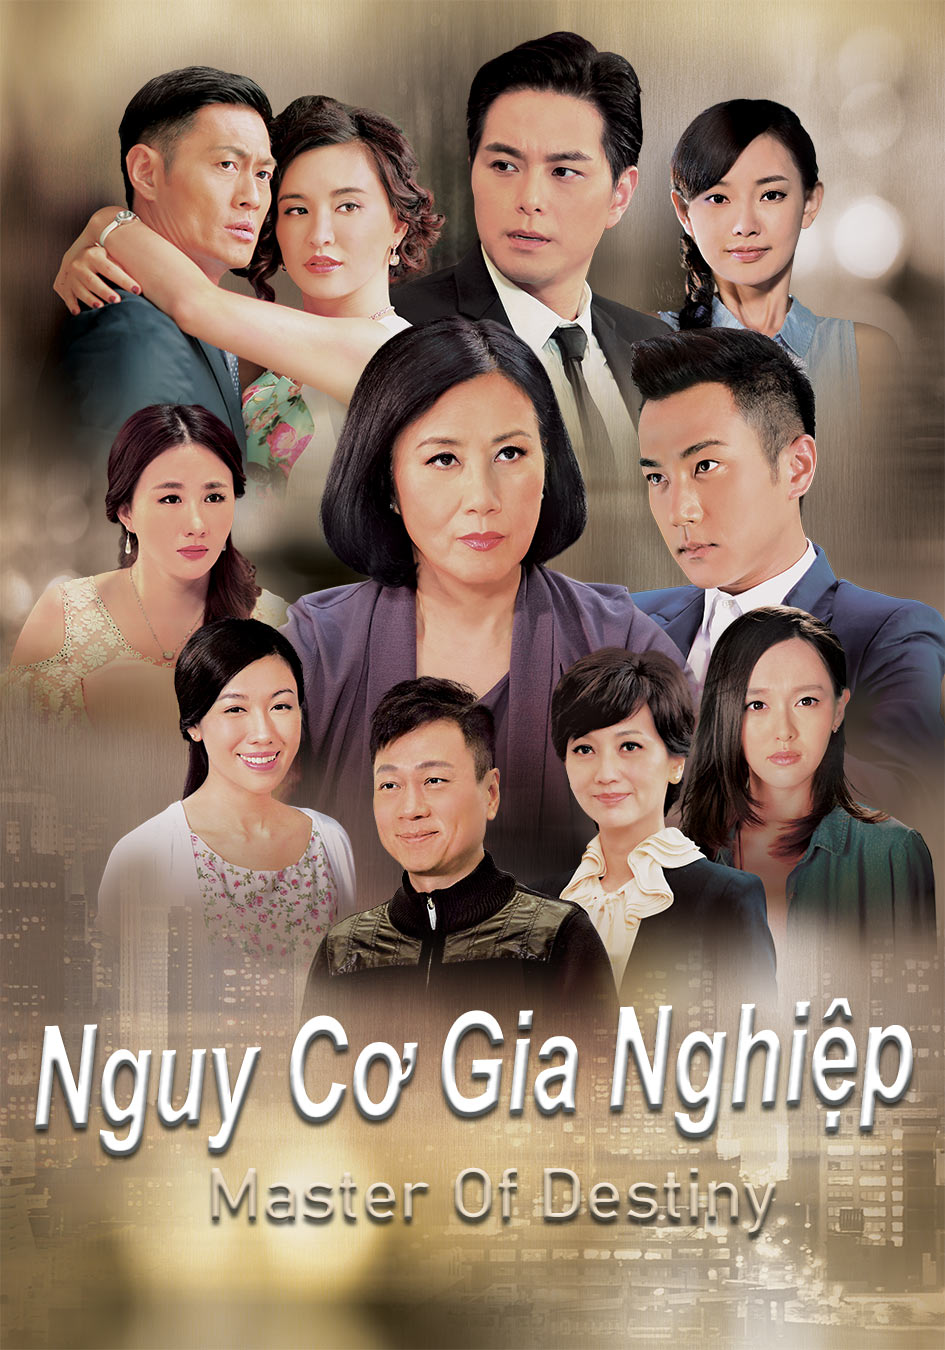 Nguy Cơ Gia Nghiệp-